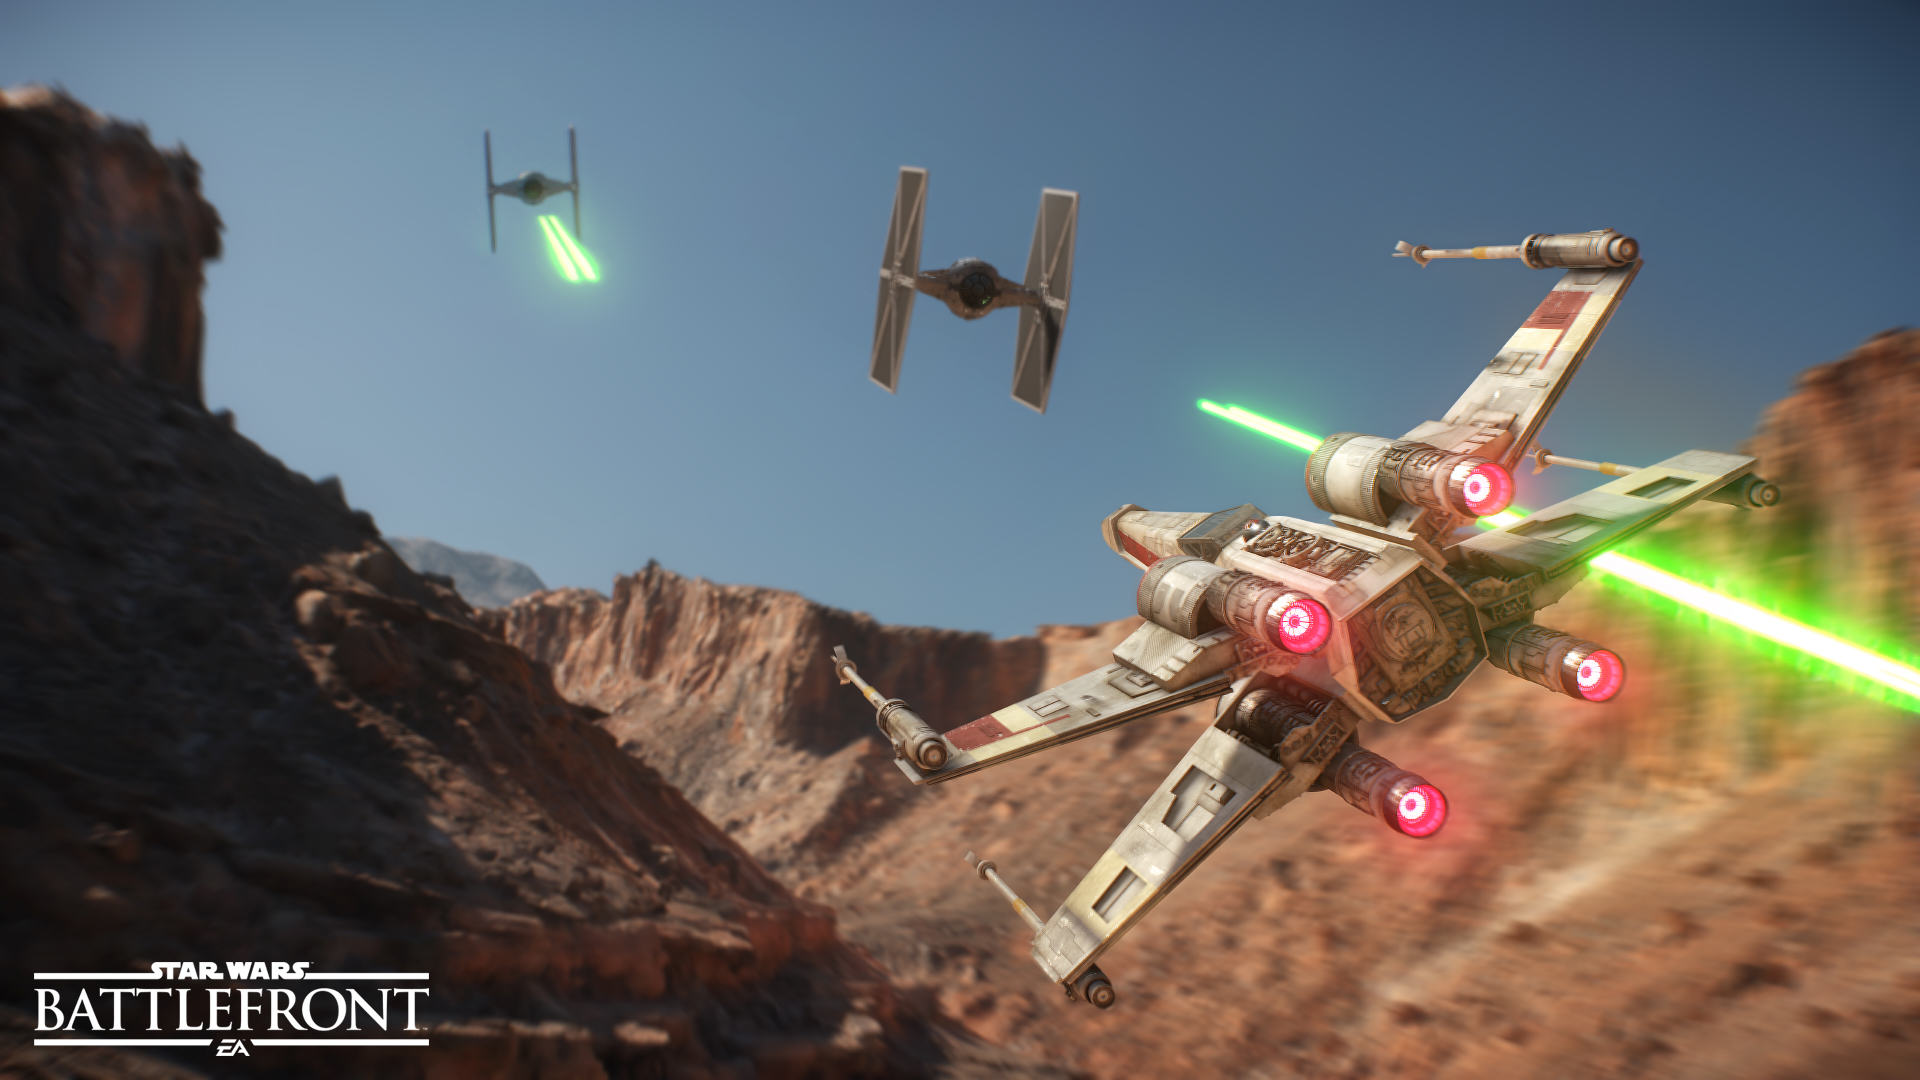 UNILAD efBUv6o Imgur3 Star Wars: Battlefront Looks Stunning In These Desktop Backgrounds And Images